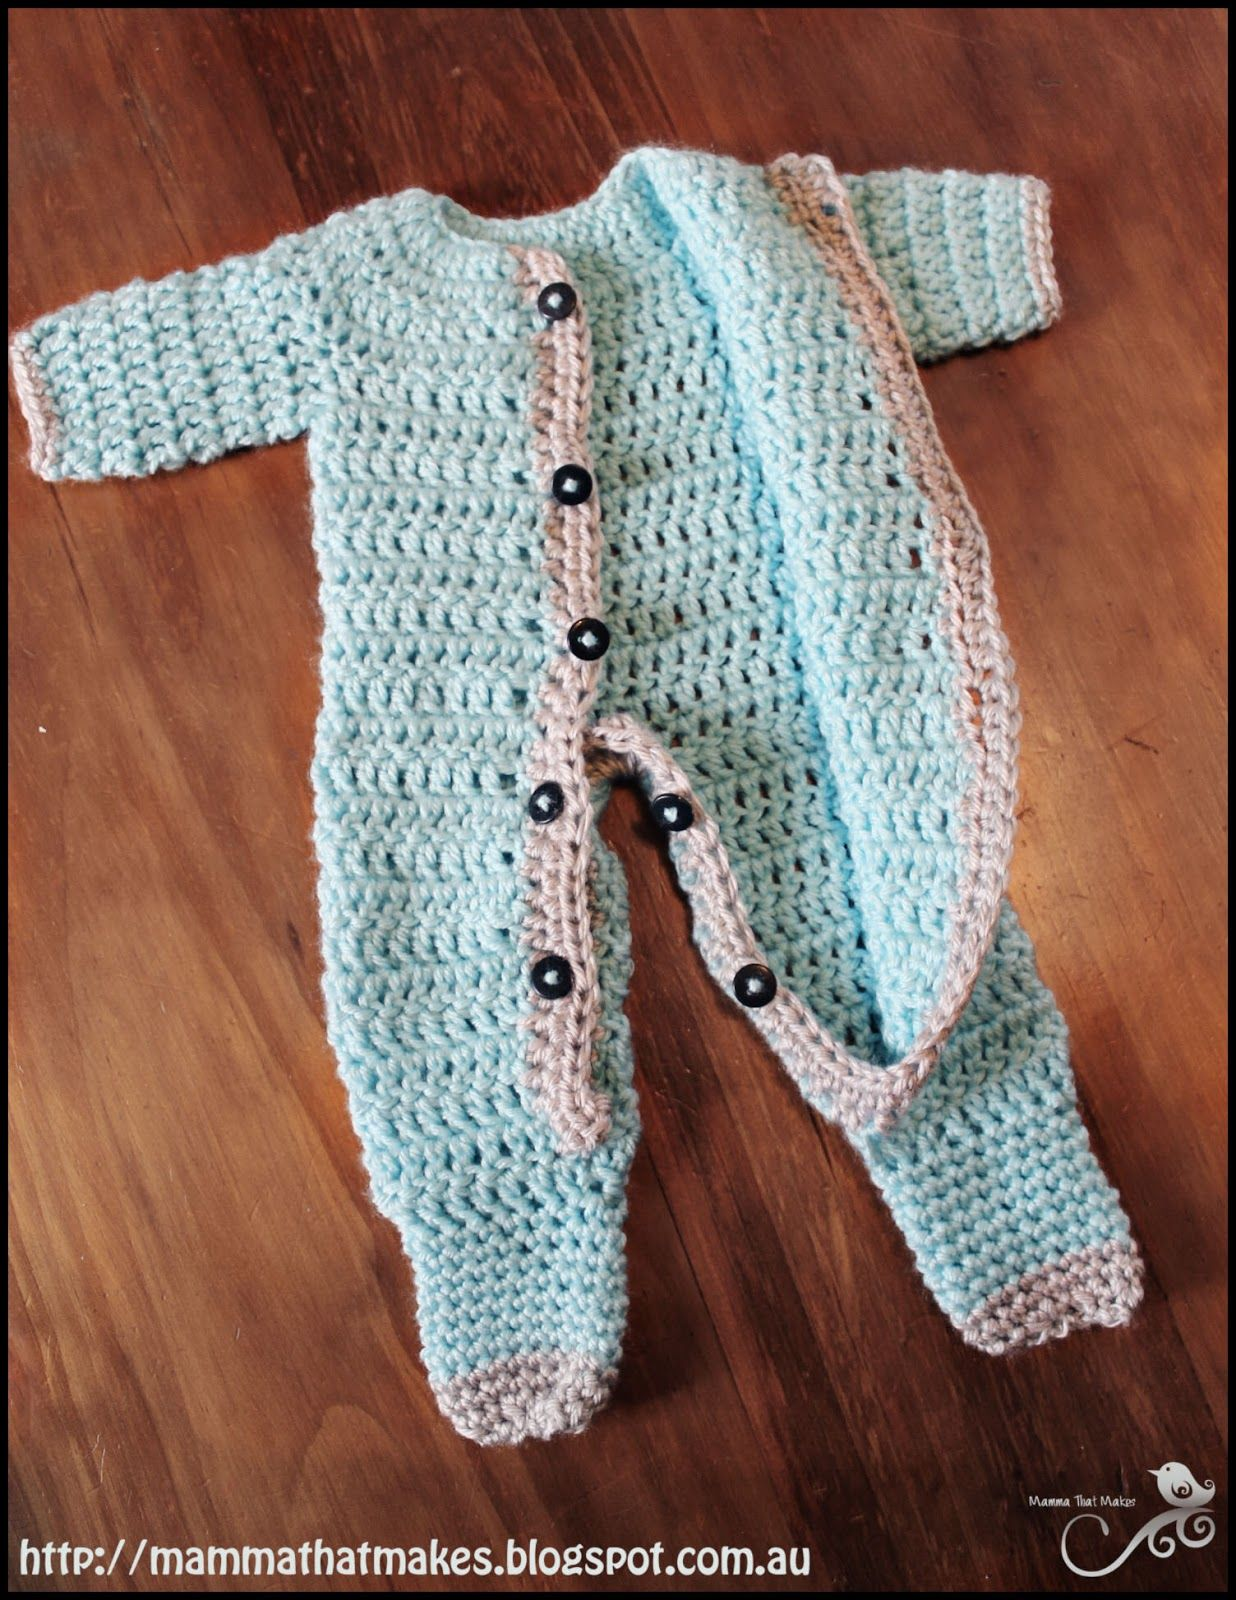 Mamma that makes ezra romper free crochet pattern gift ideas mamma that makes ezra romper free crochet pattern preemie long sleeves bankloansurffo Choice Image